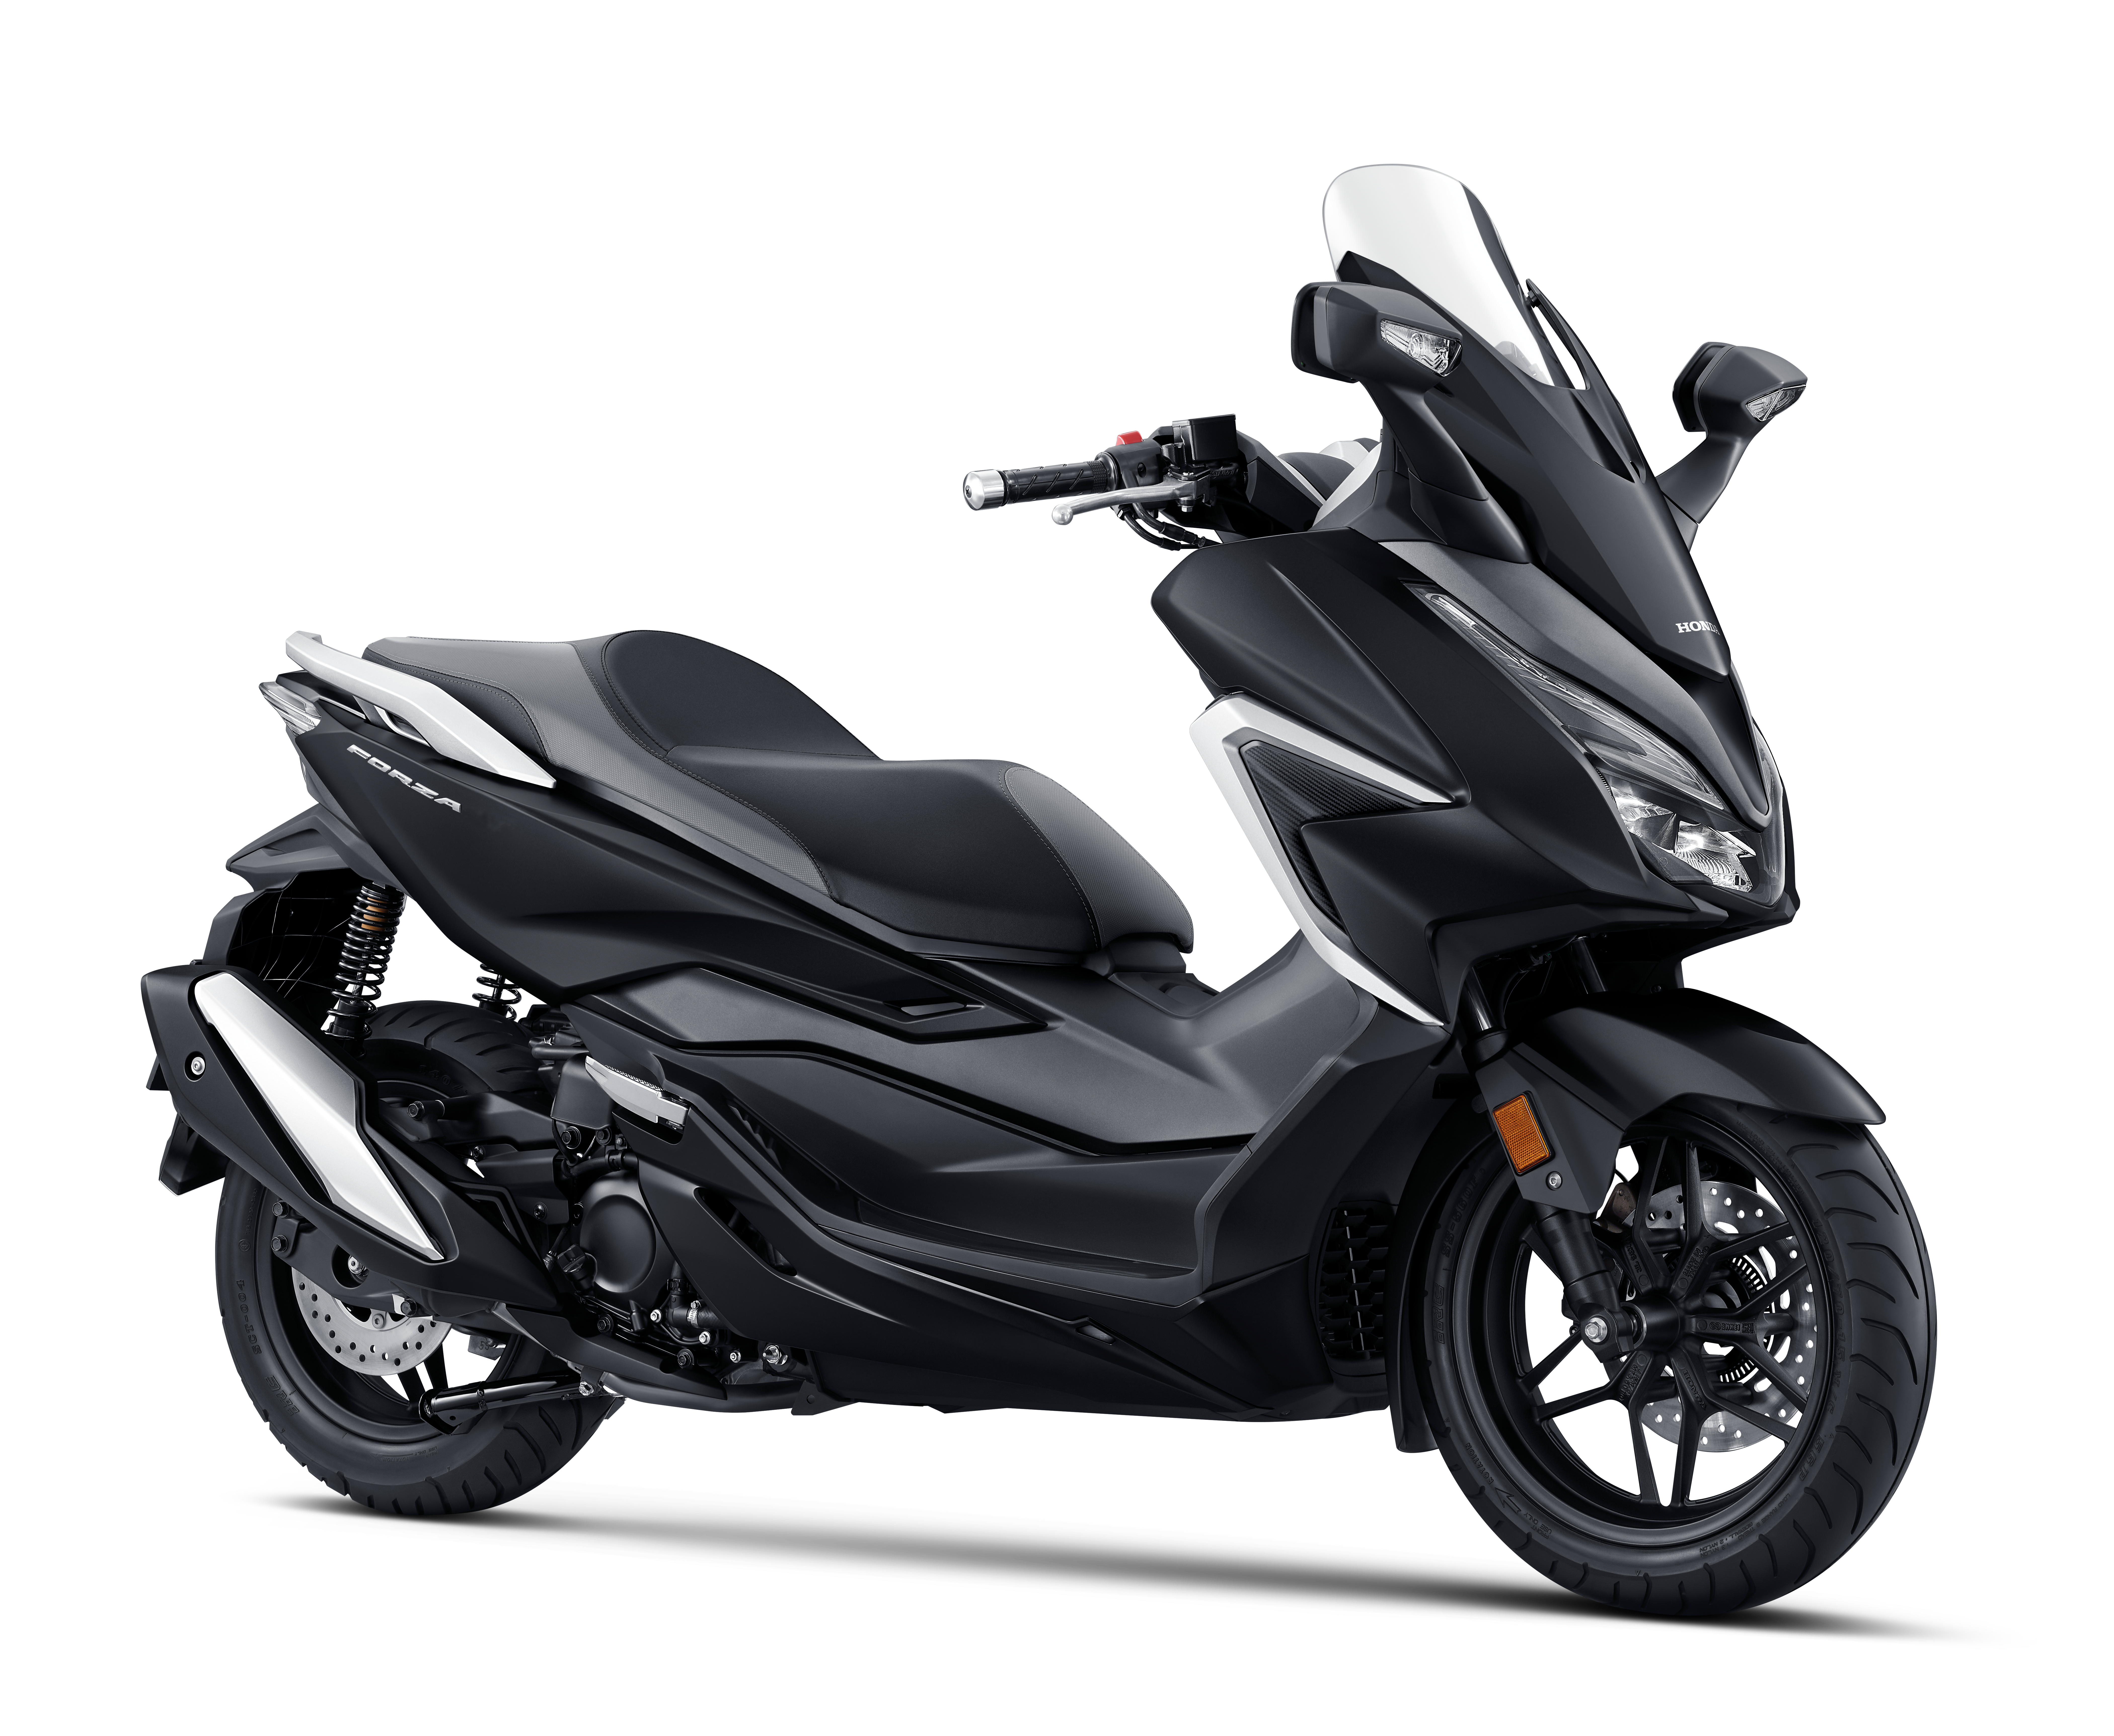 2021 Honda Forza 250 scooter in Malaysia – RM25,388 Image #1265503